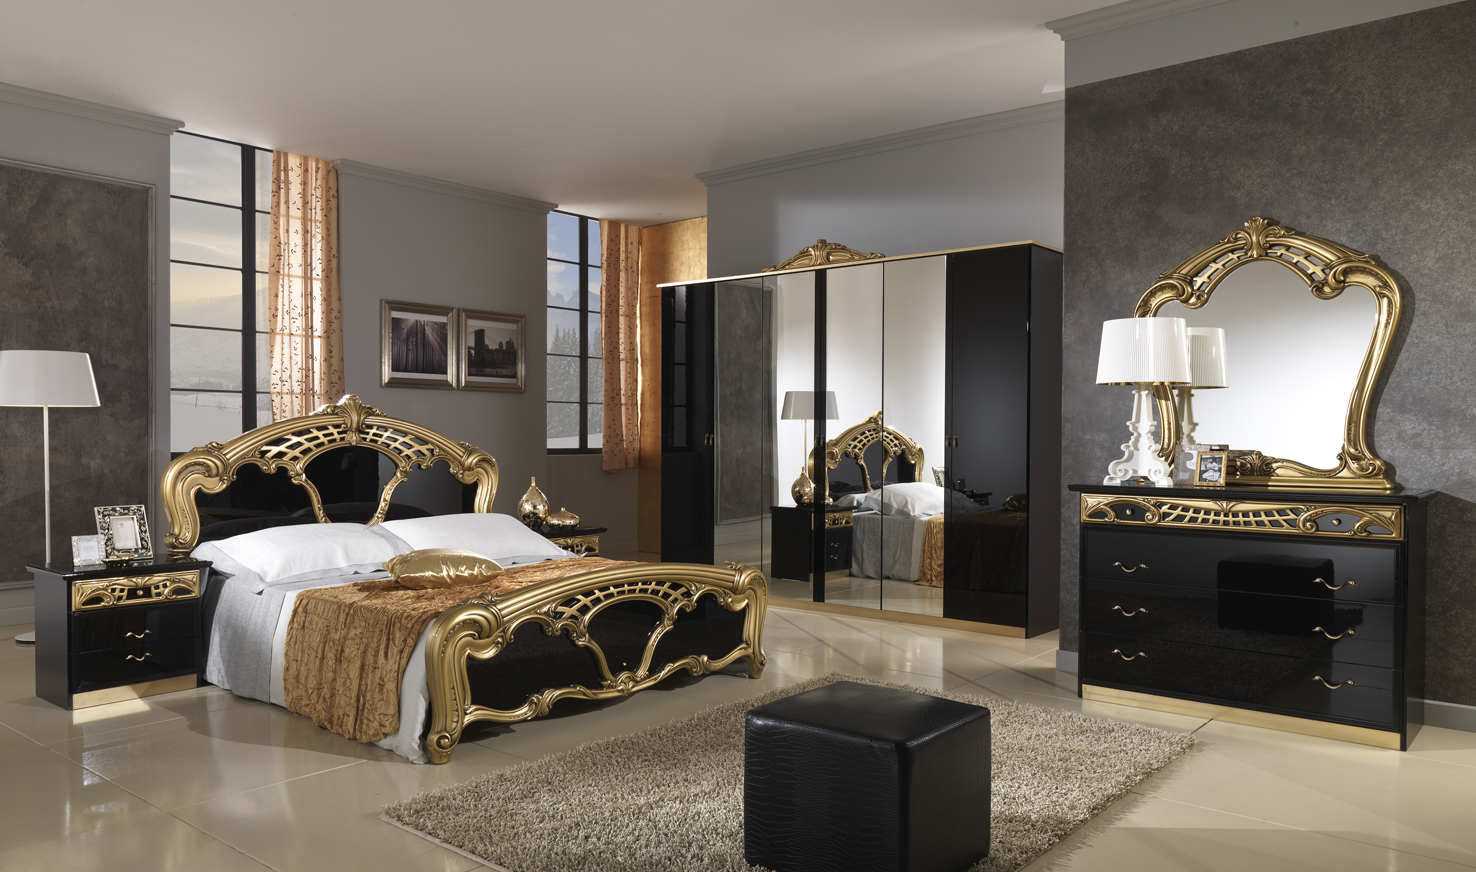 classical bedroom gold black 05 11 08 001